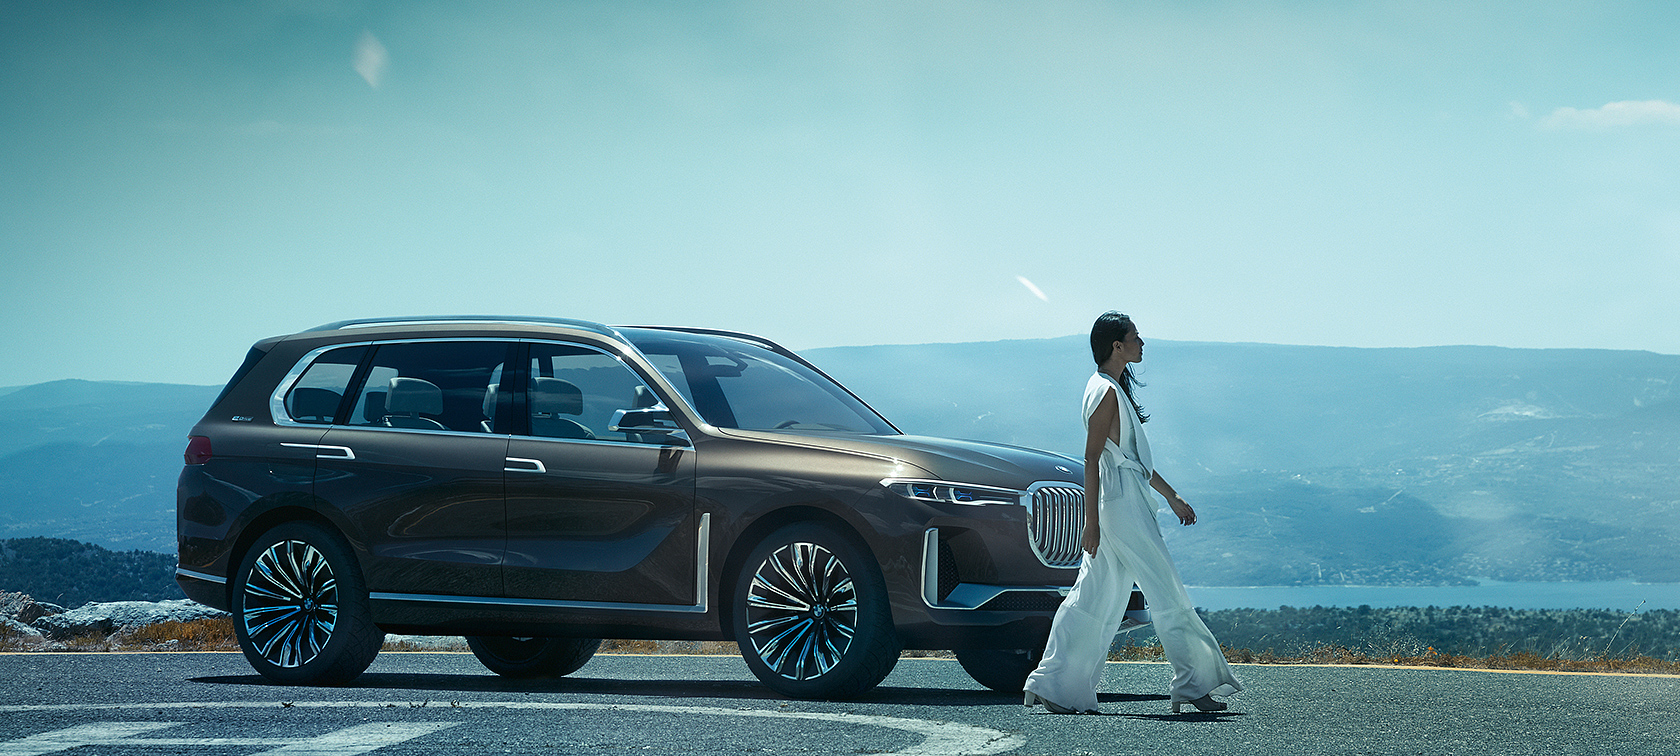 concept cars | bmw concept x7 iperformance